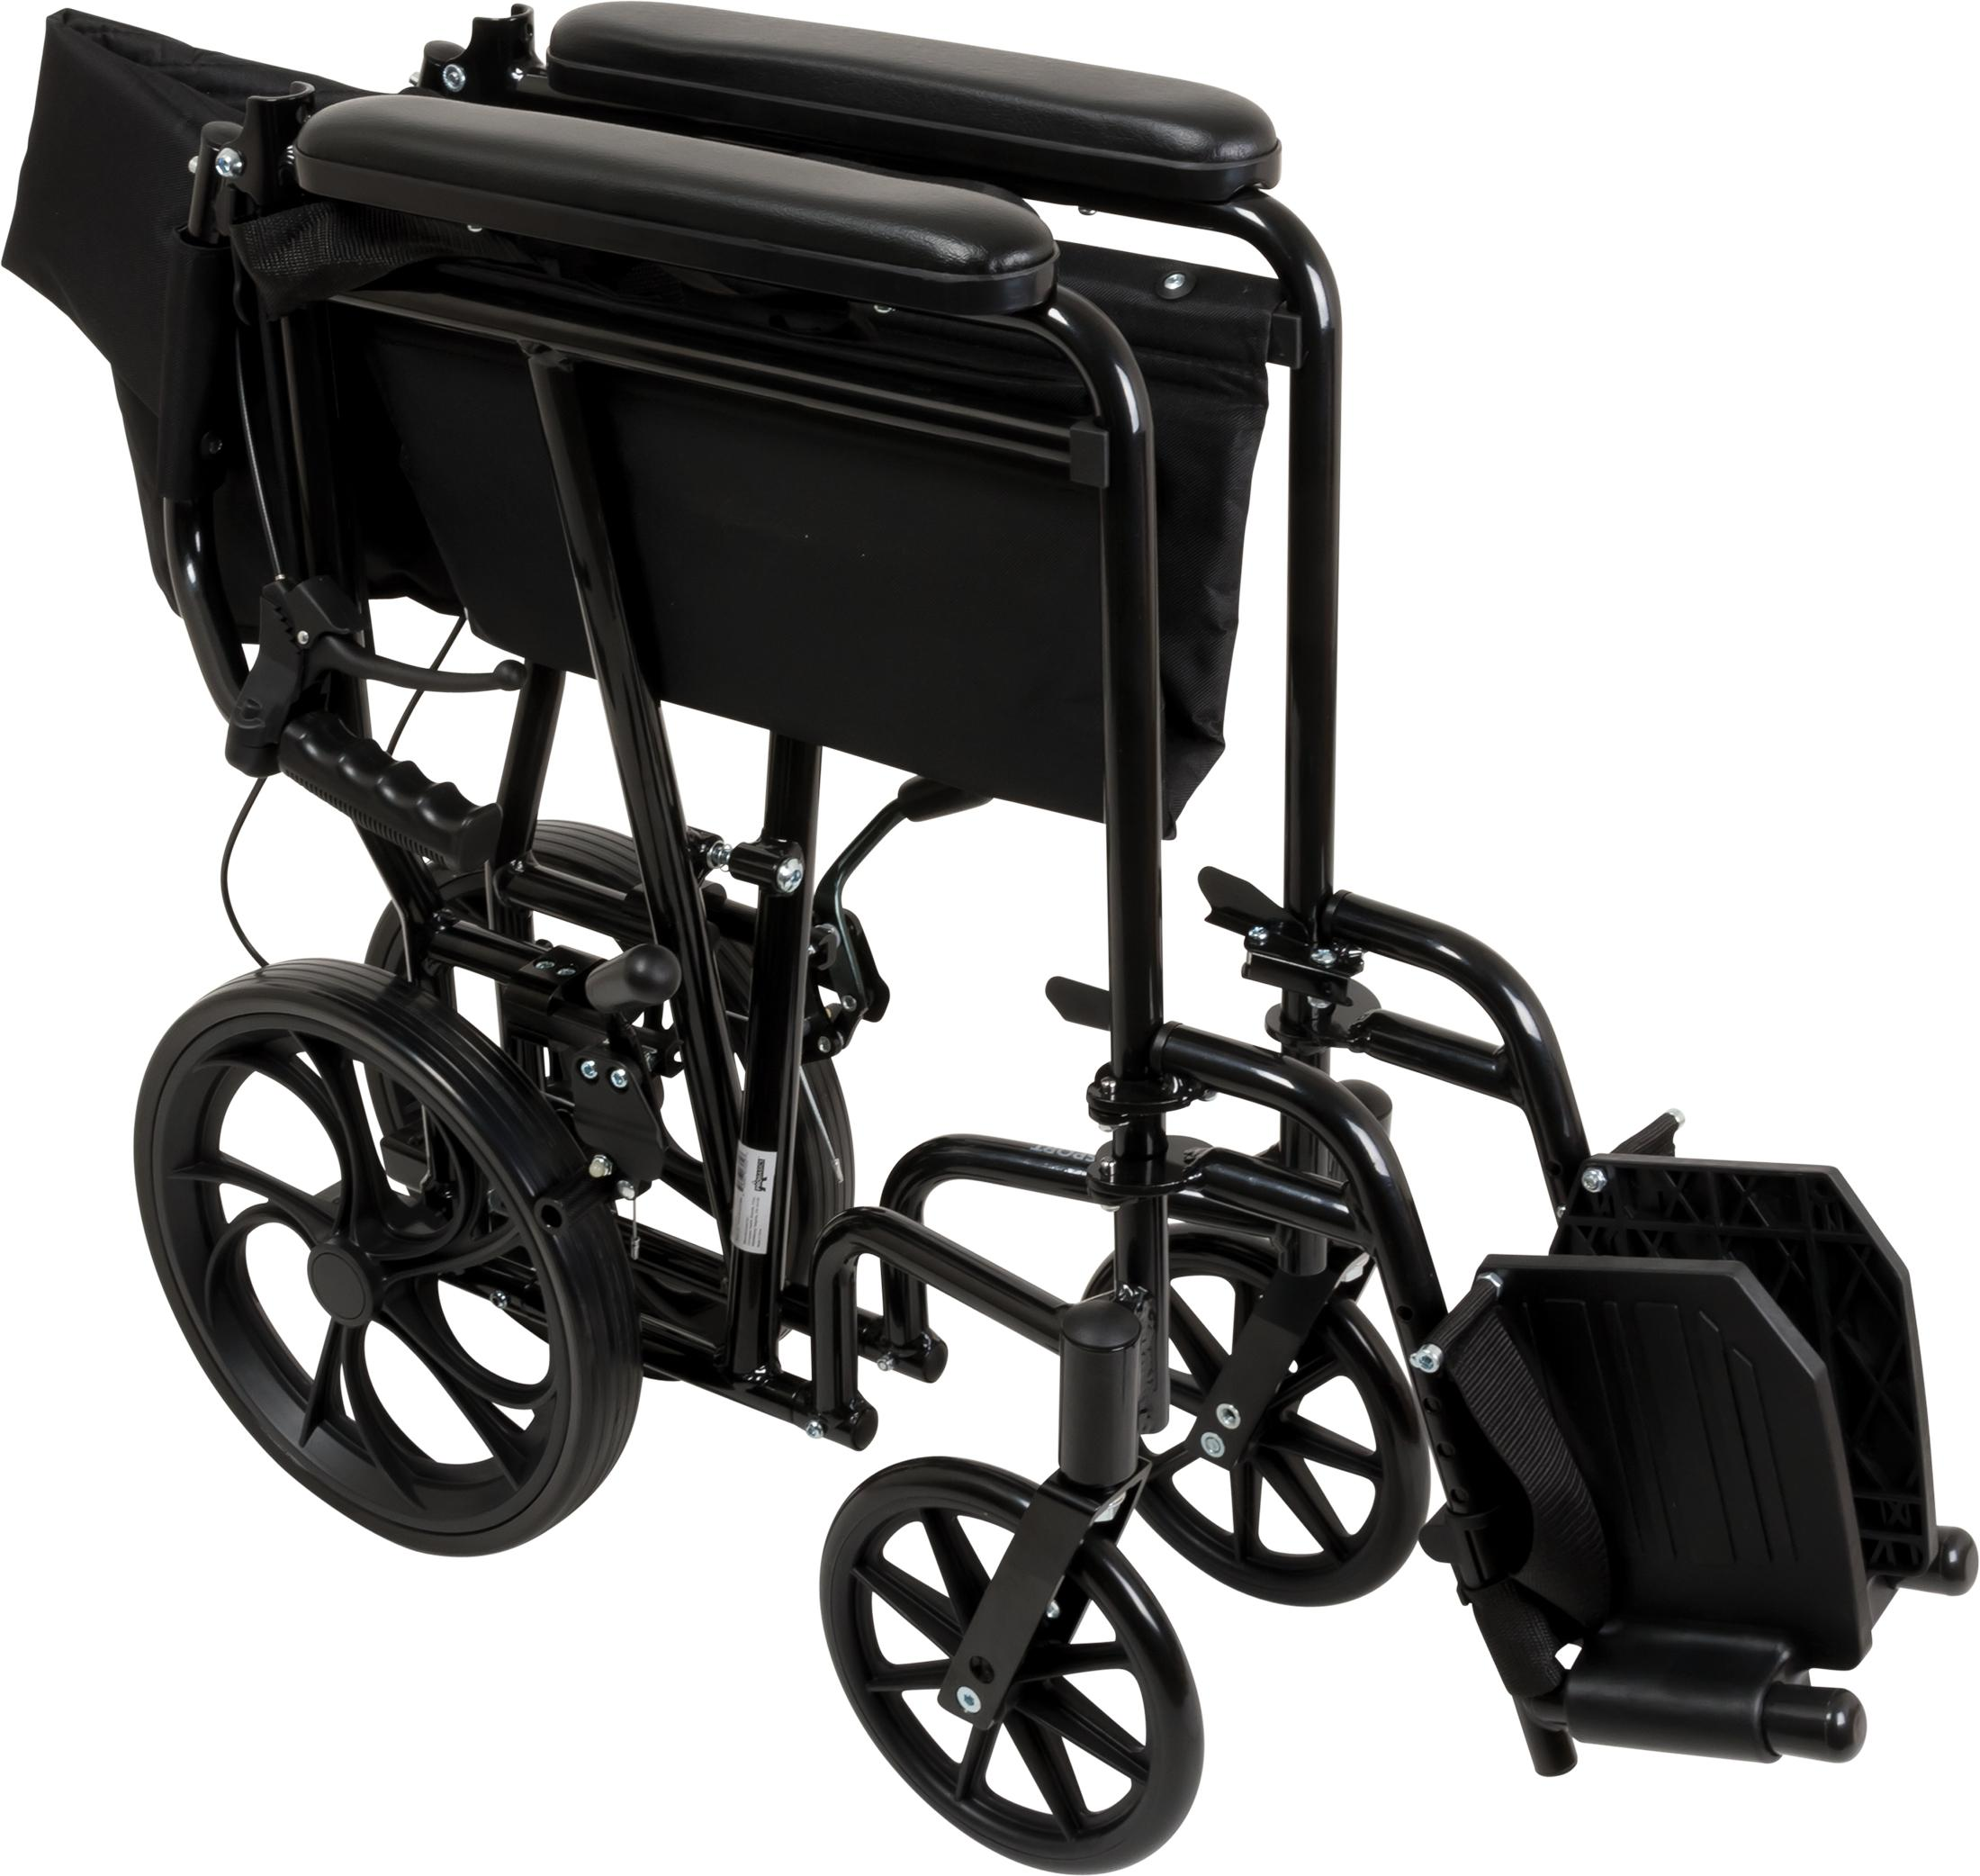 Roscoe Medical Probasics 19 Inch Transport Aluminum